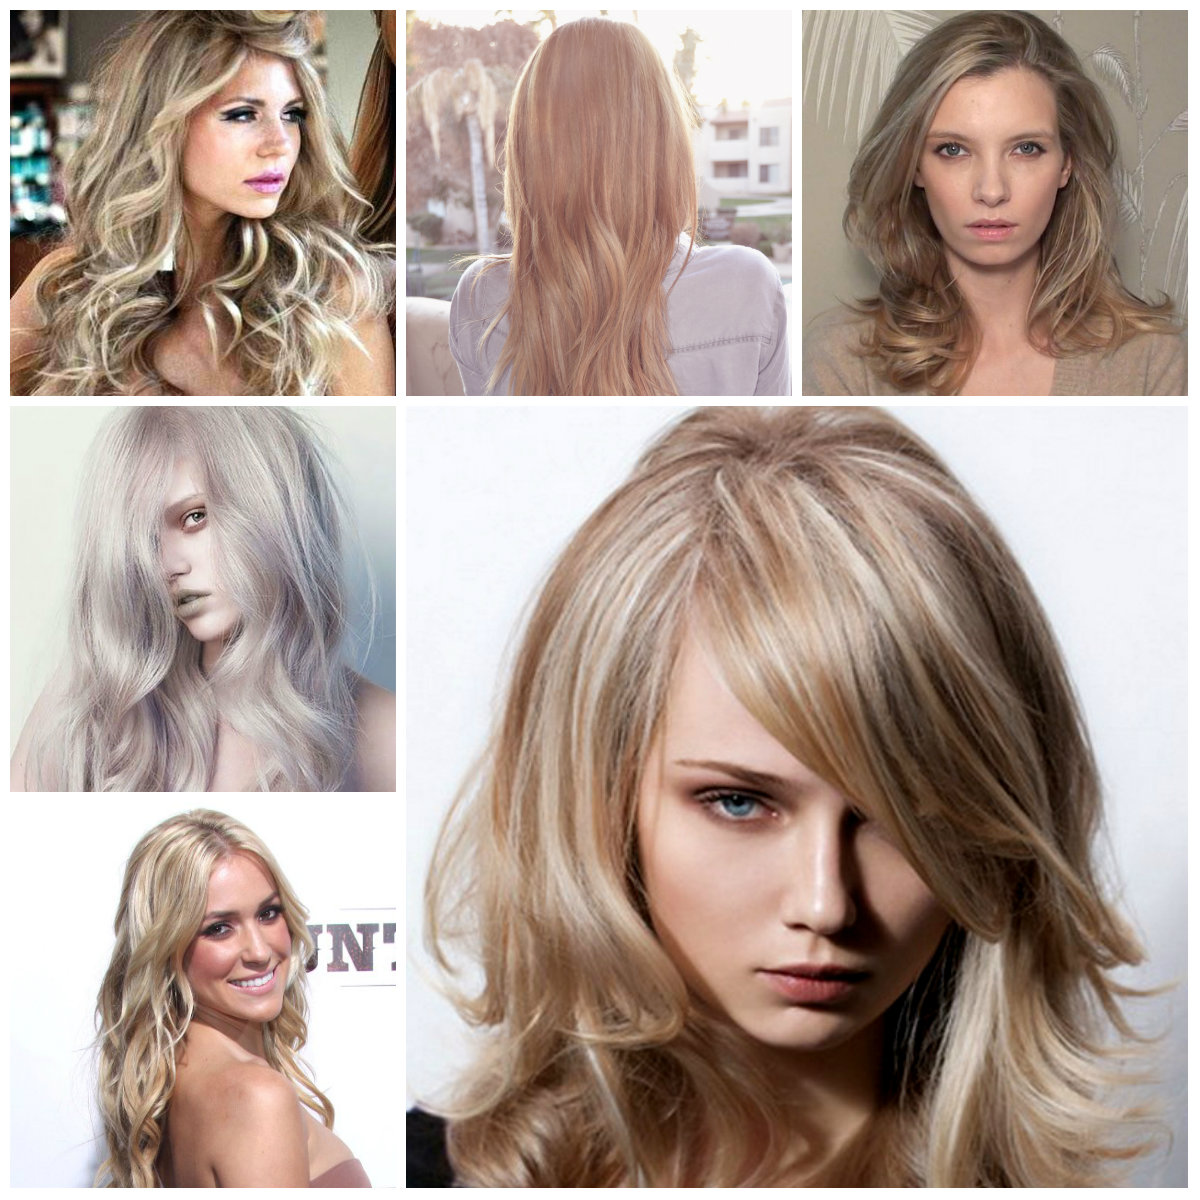 Blonde Hair Colors For Fair Skin Tone Hair Fashion Online